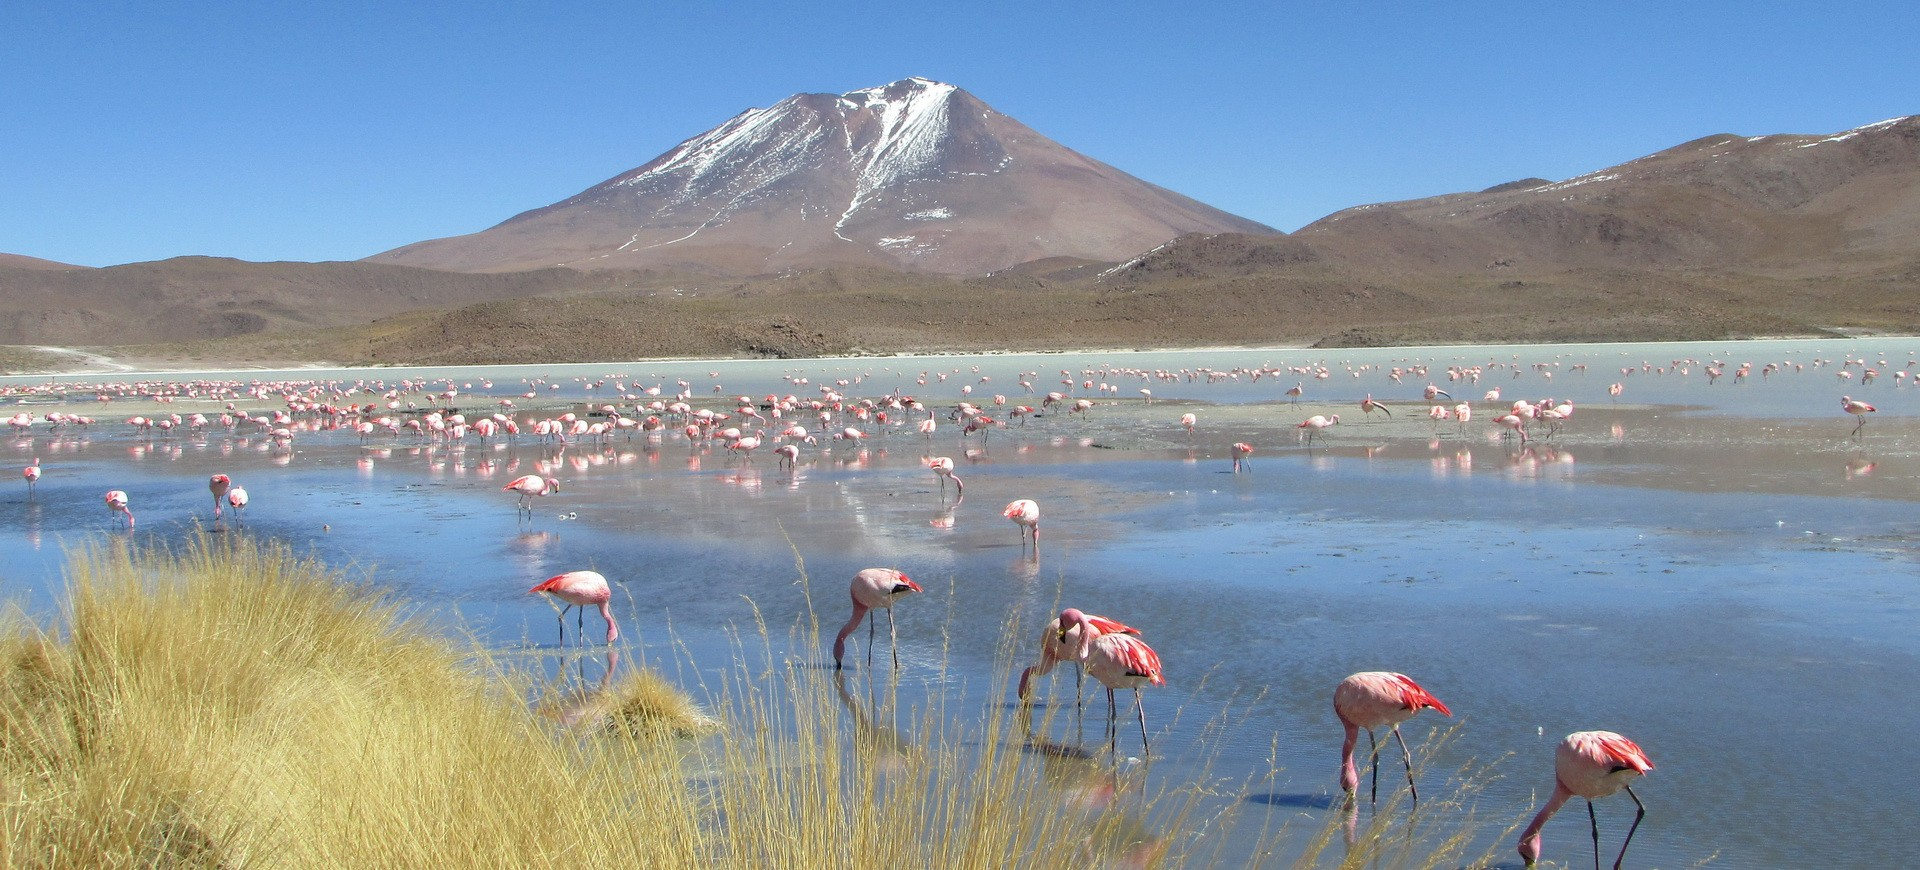 Flamants Rose dans la Laguna Hedionda en Bolivie